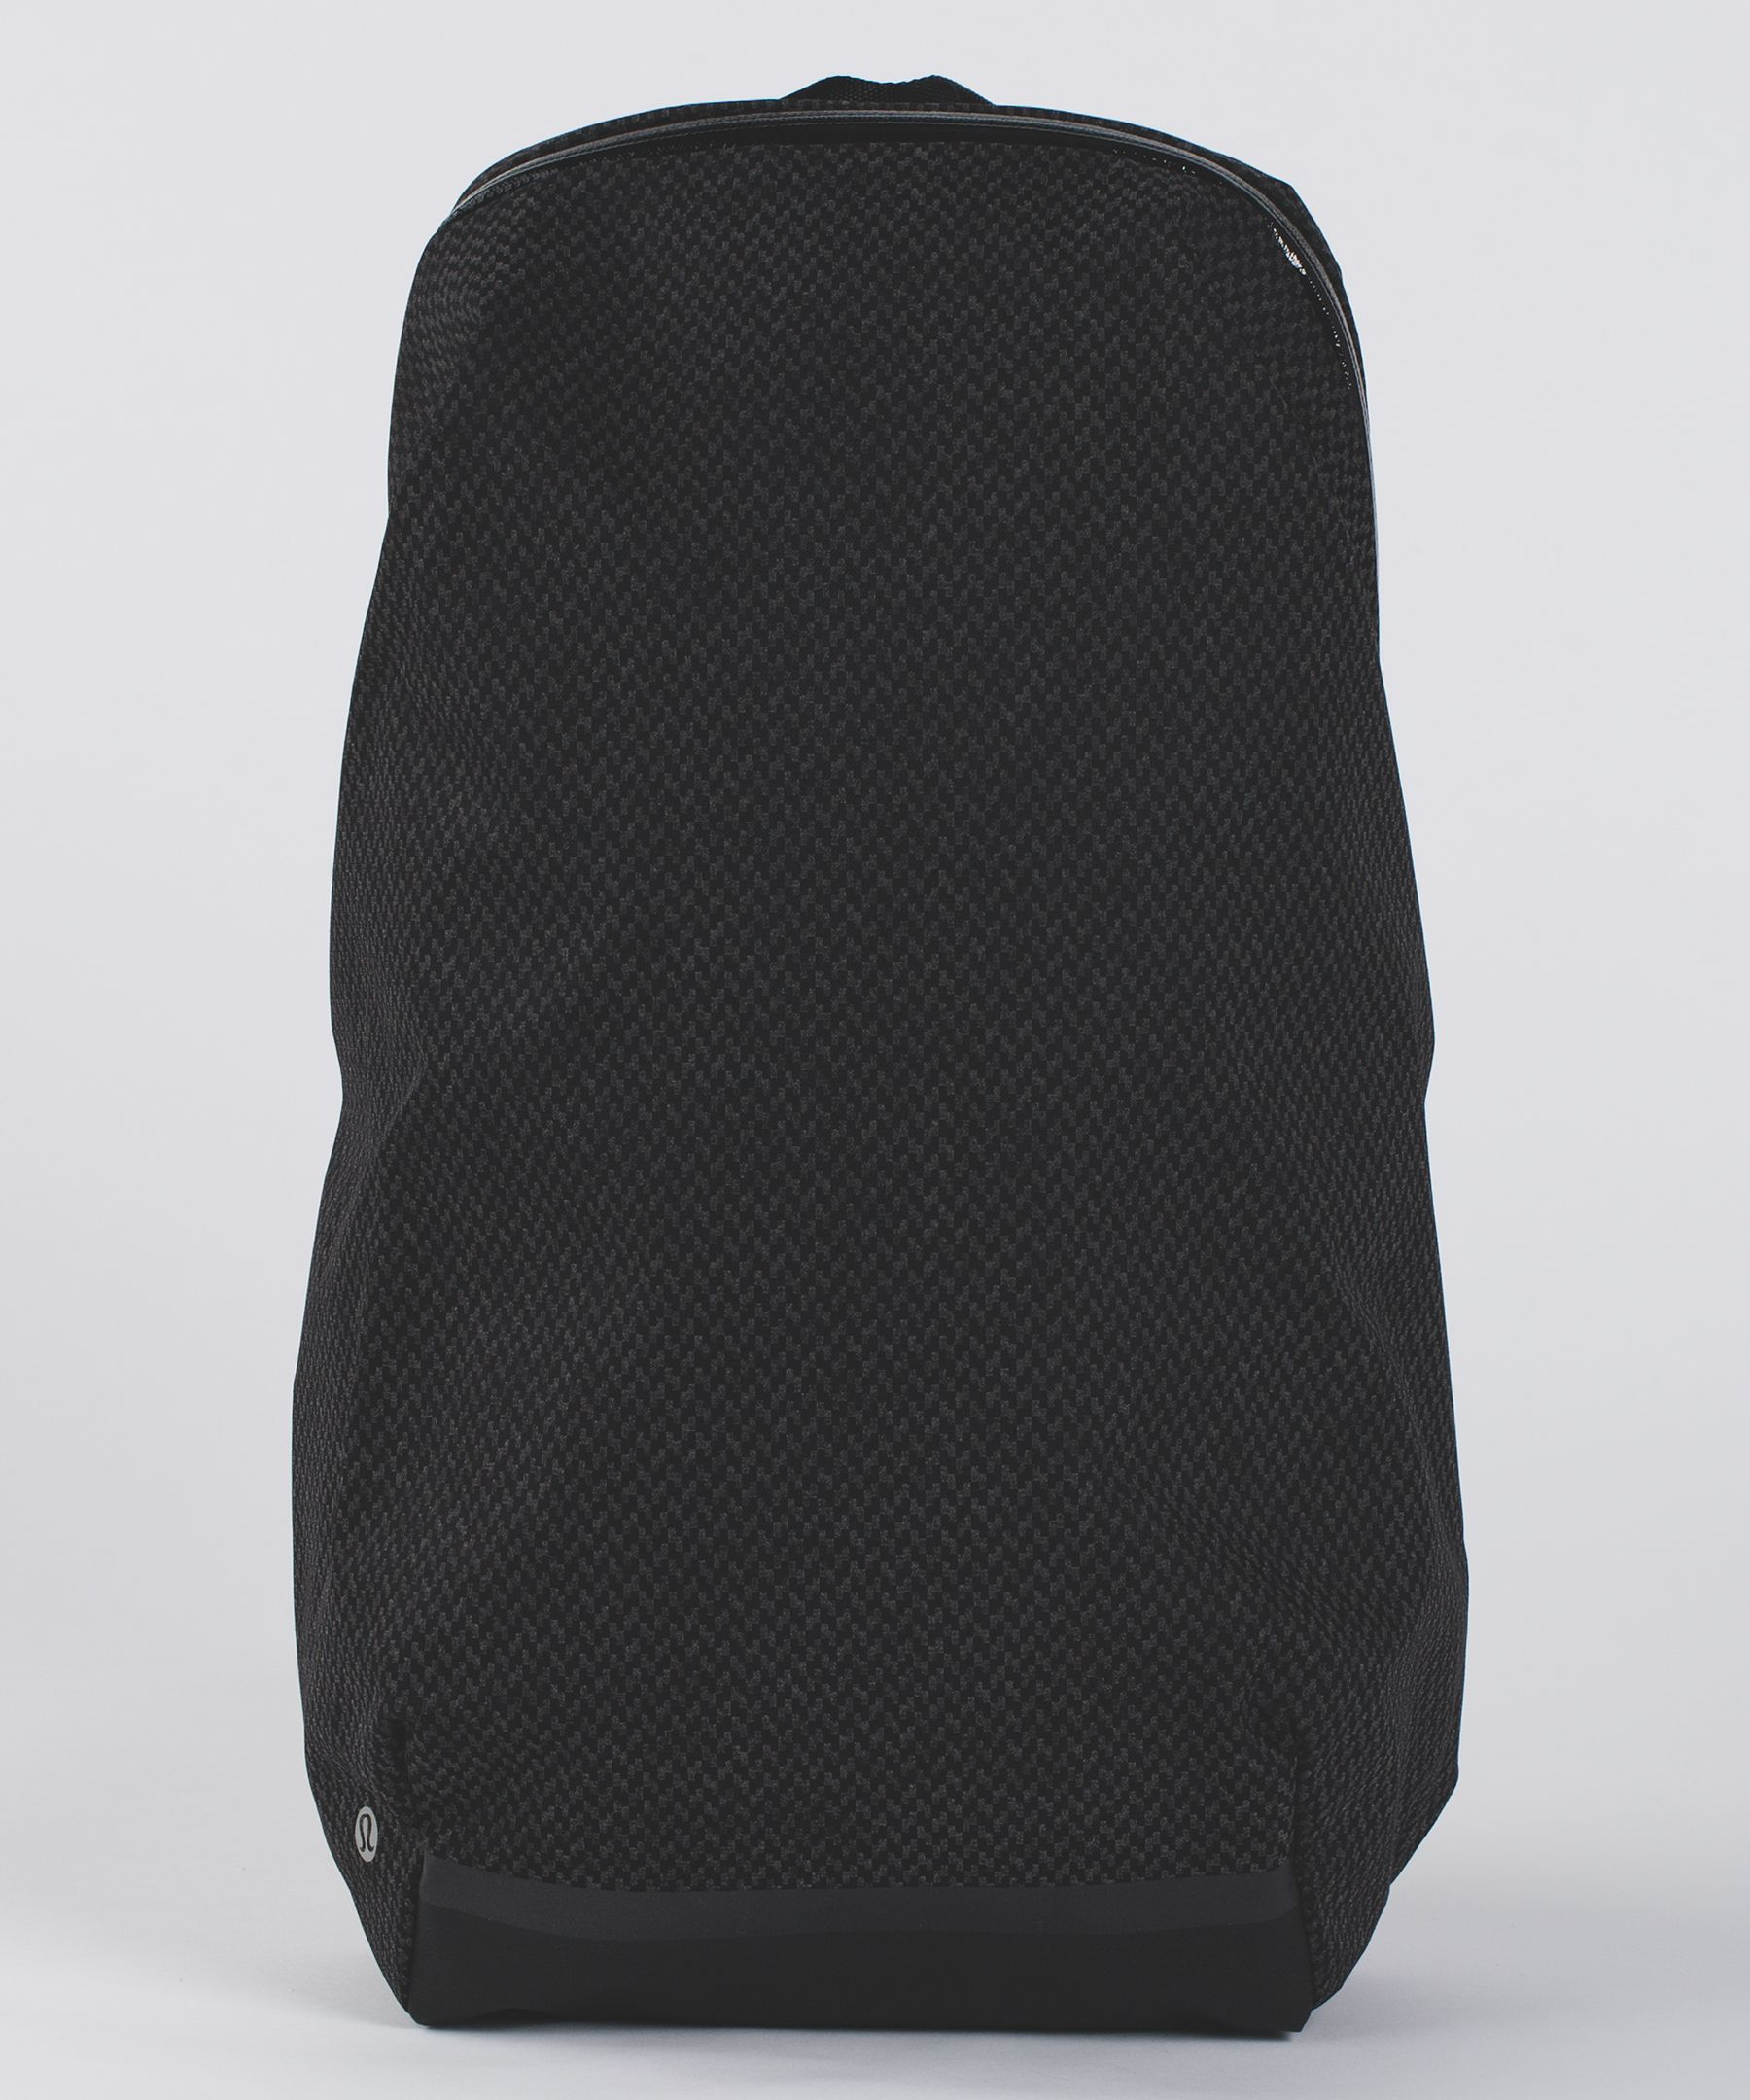 b29dbb26a58 surge run backpack *special edition   men's bags   lululemon athletica